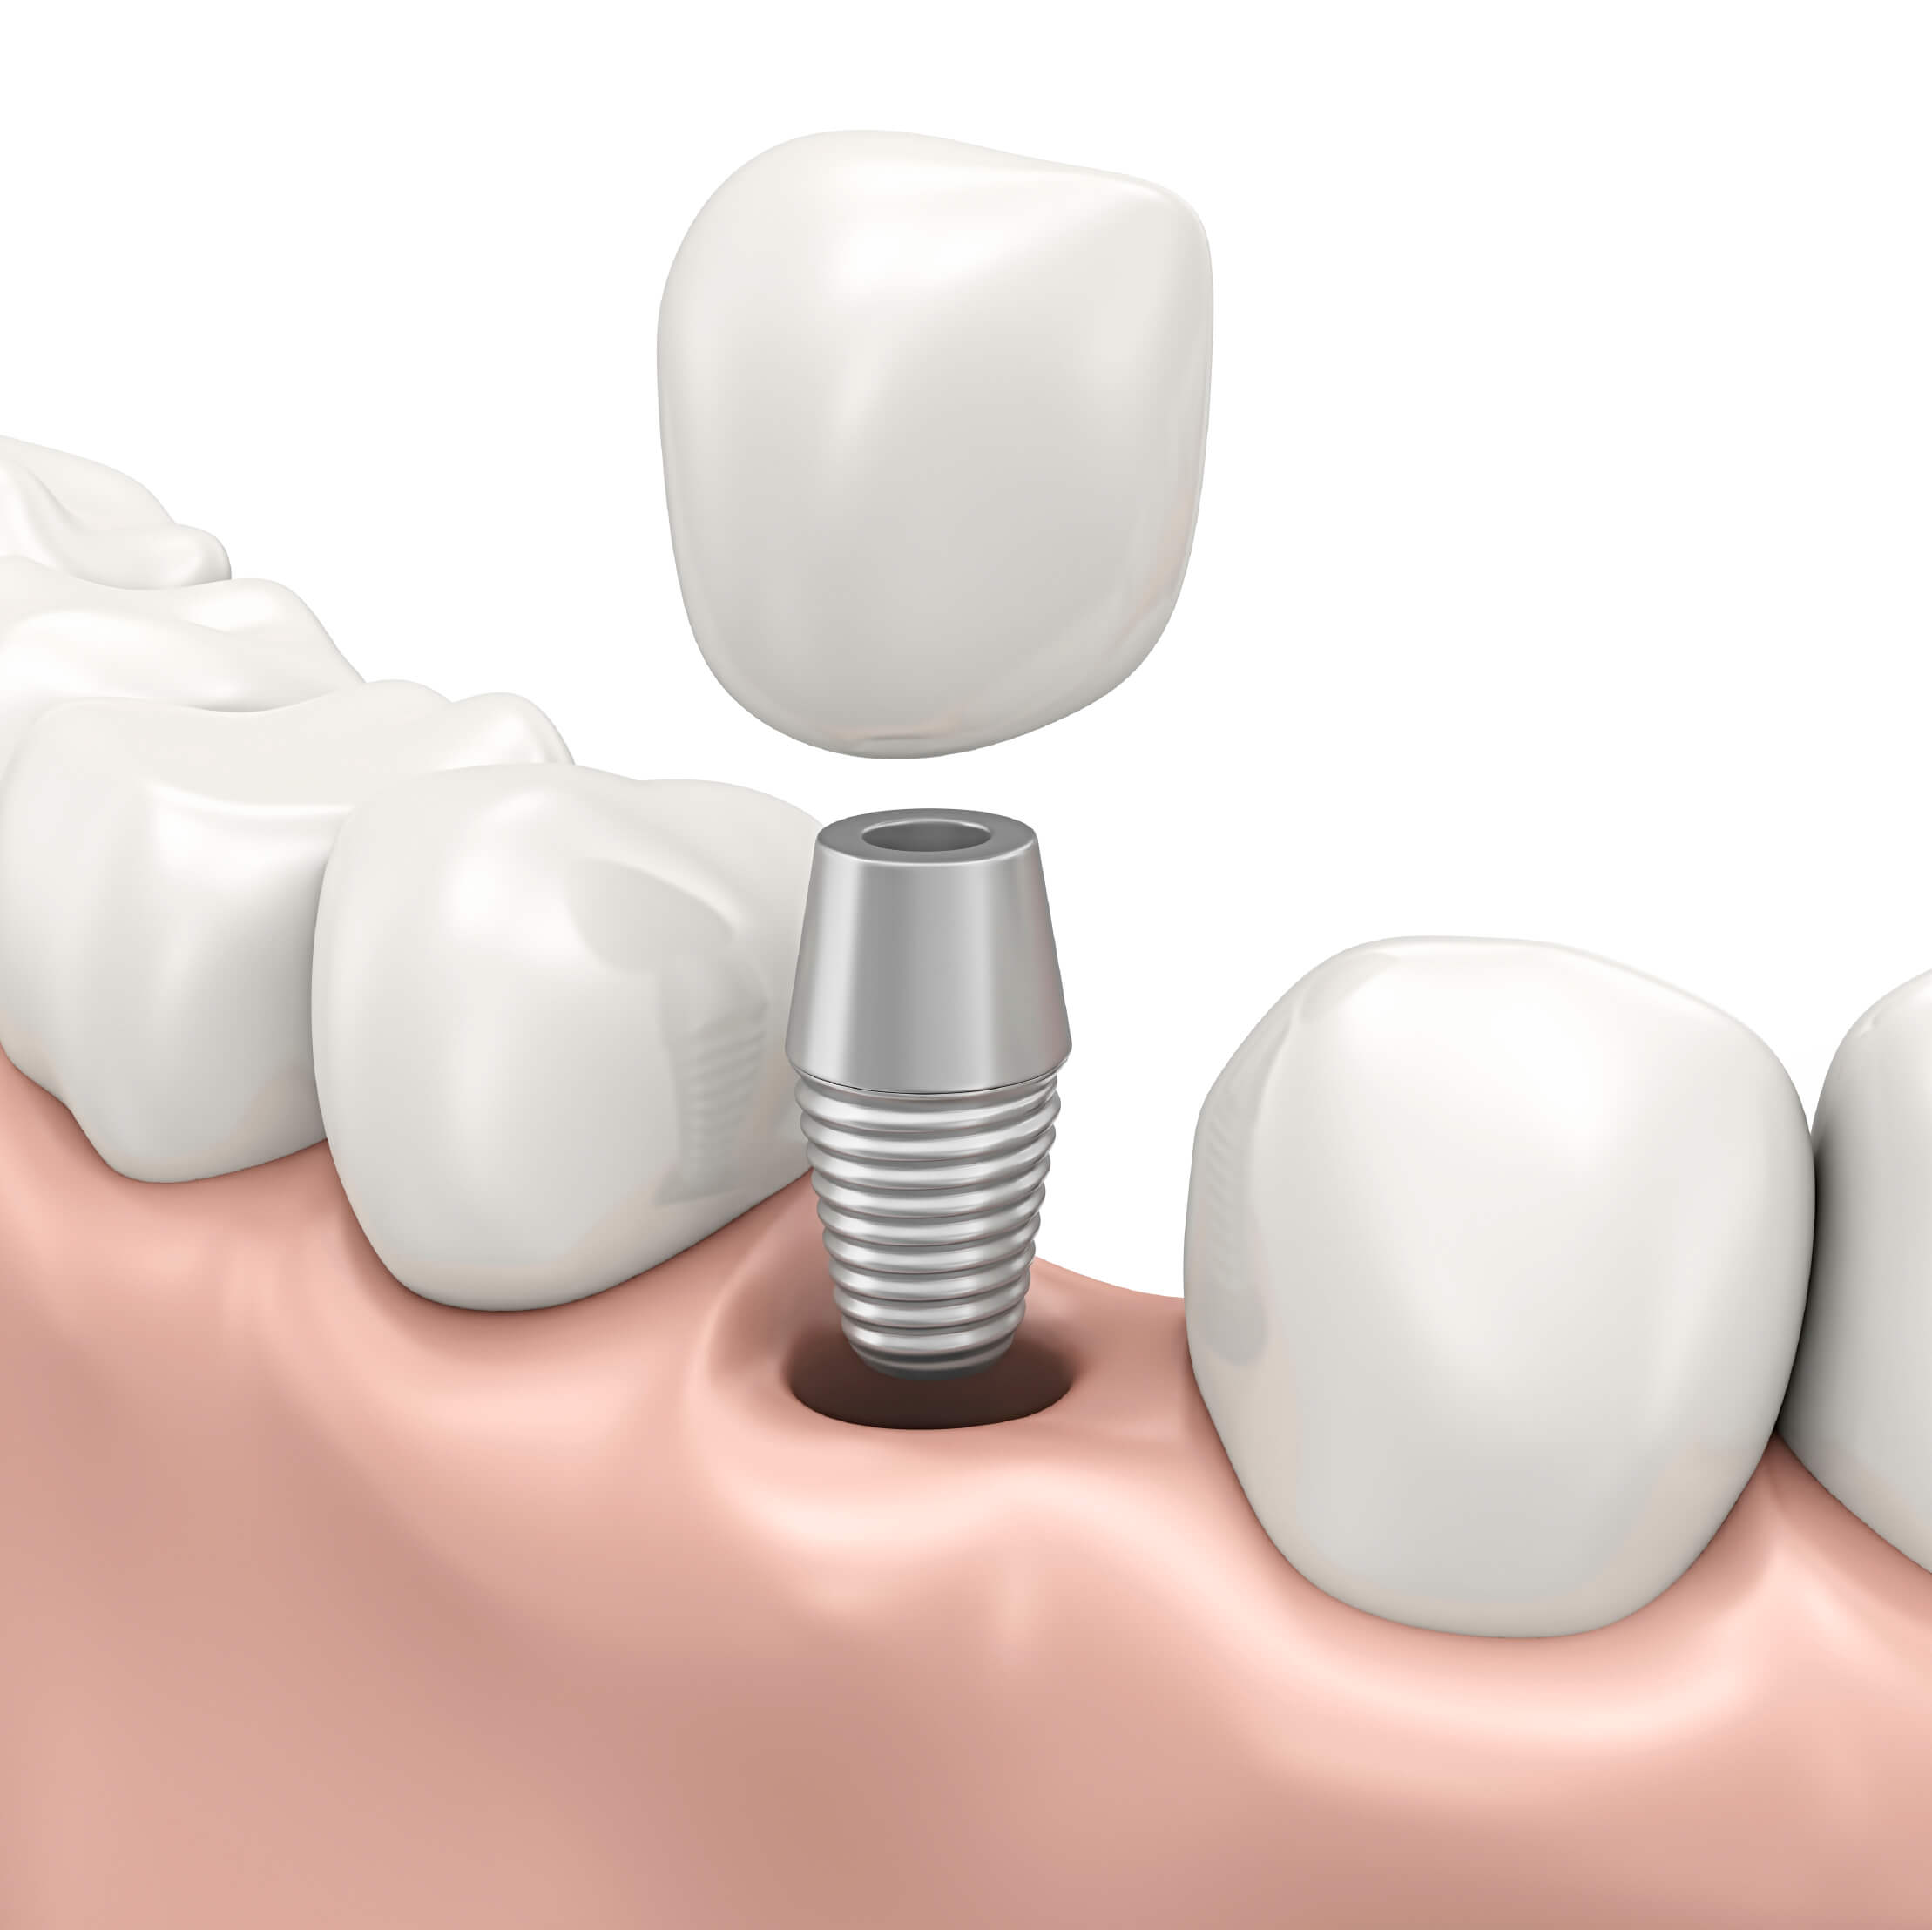 Dental Implants in San Jose